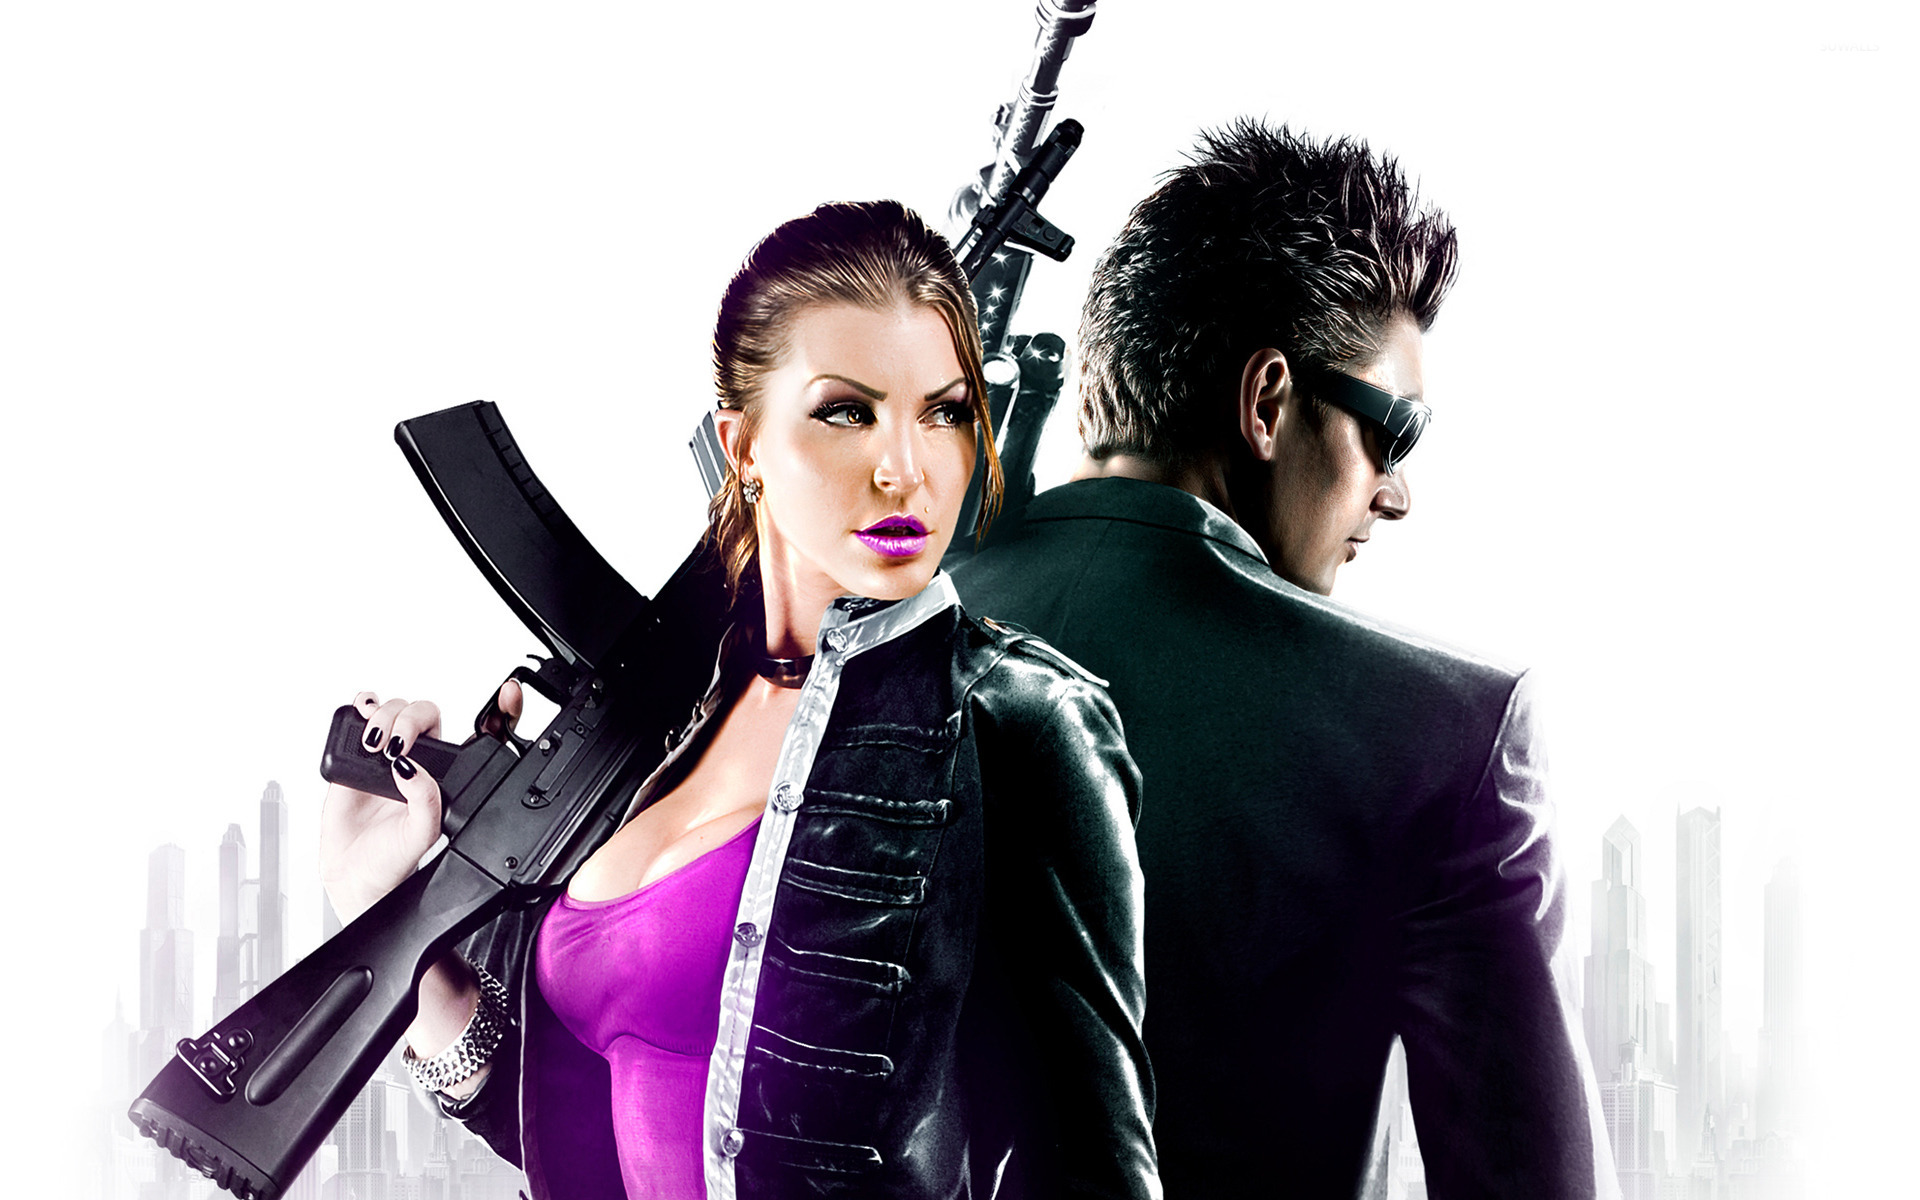 Shaundi And Johnny Gat Saints Row Iv Wallpaper Game